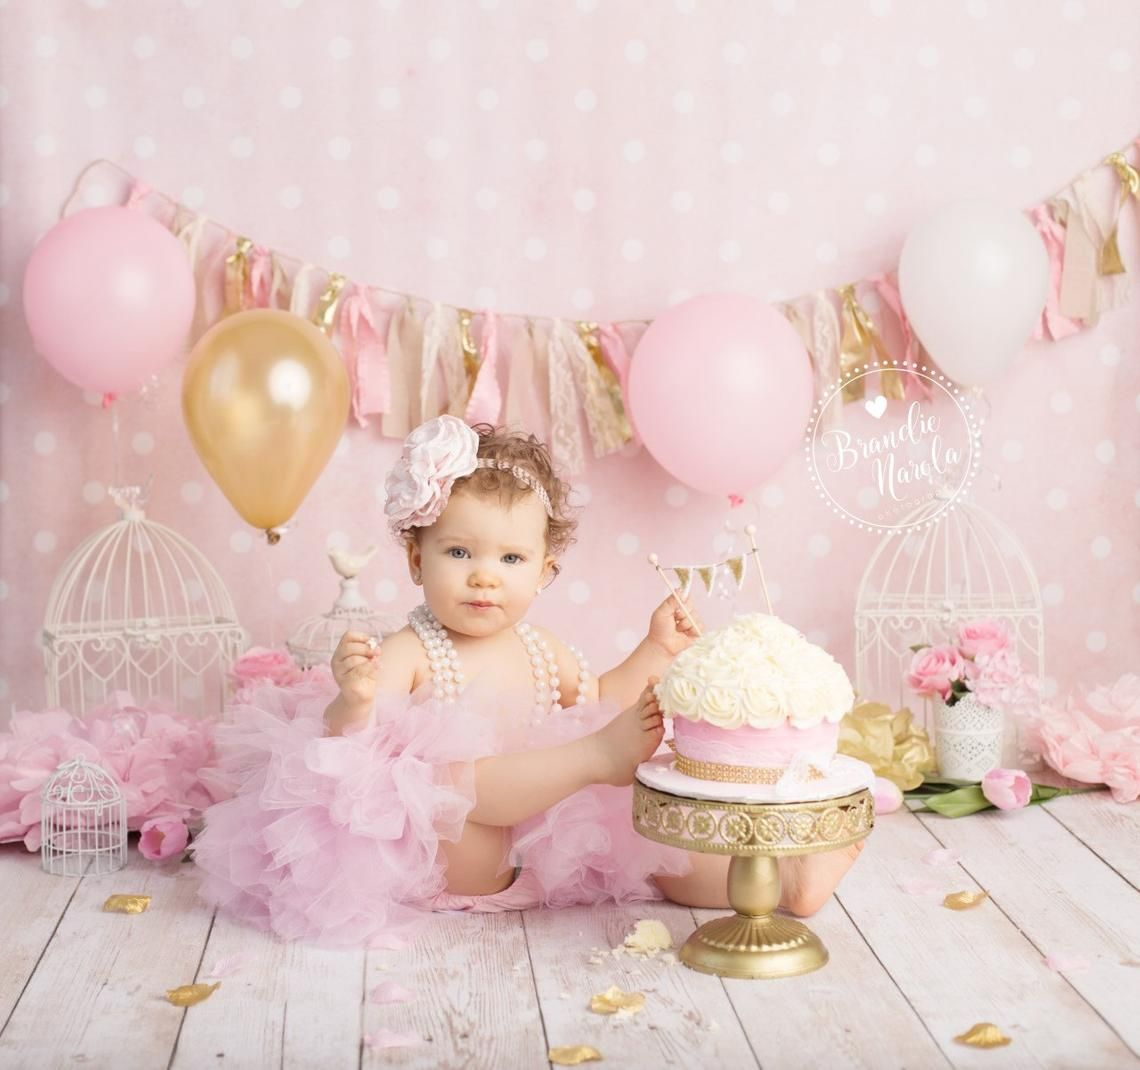 Cake smash outfit, girls first birthday outfit, cake smash